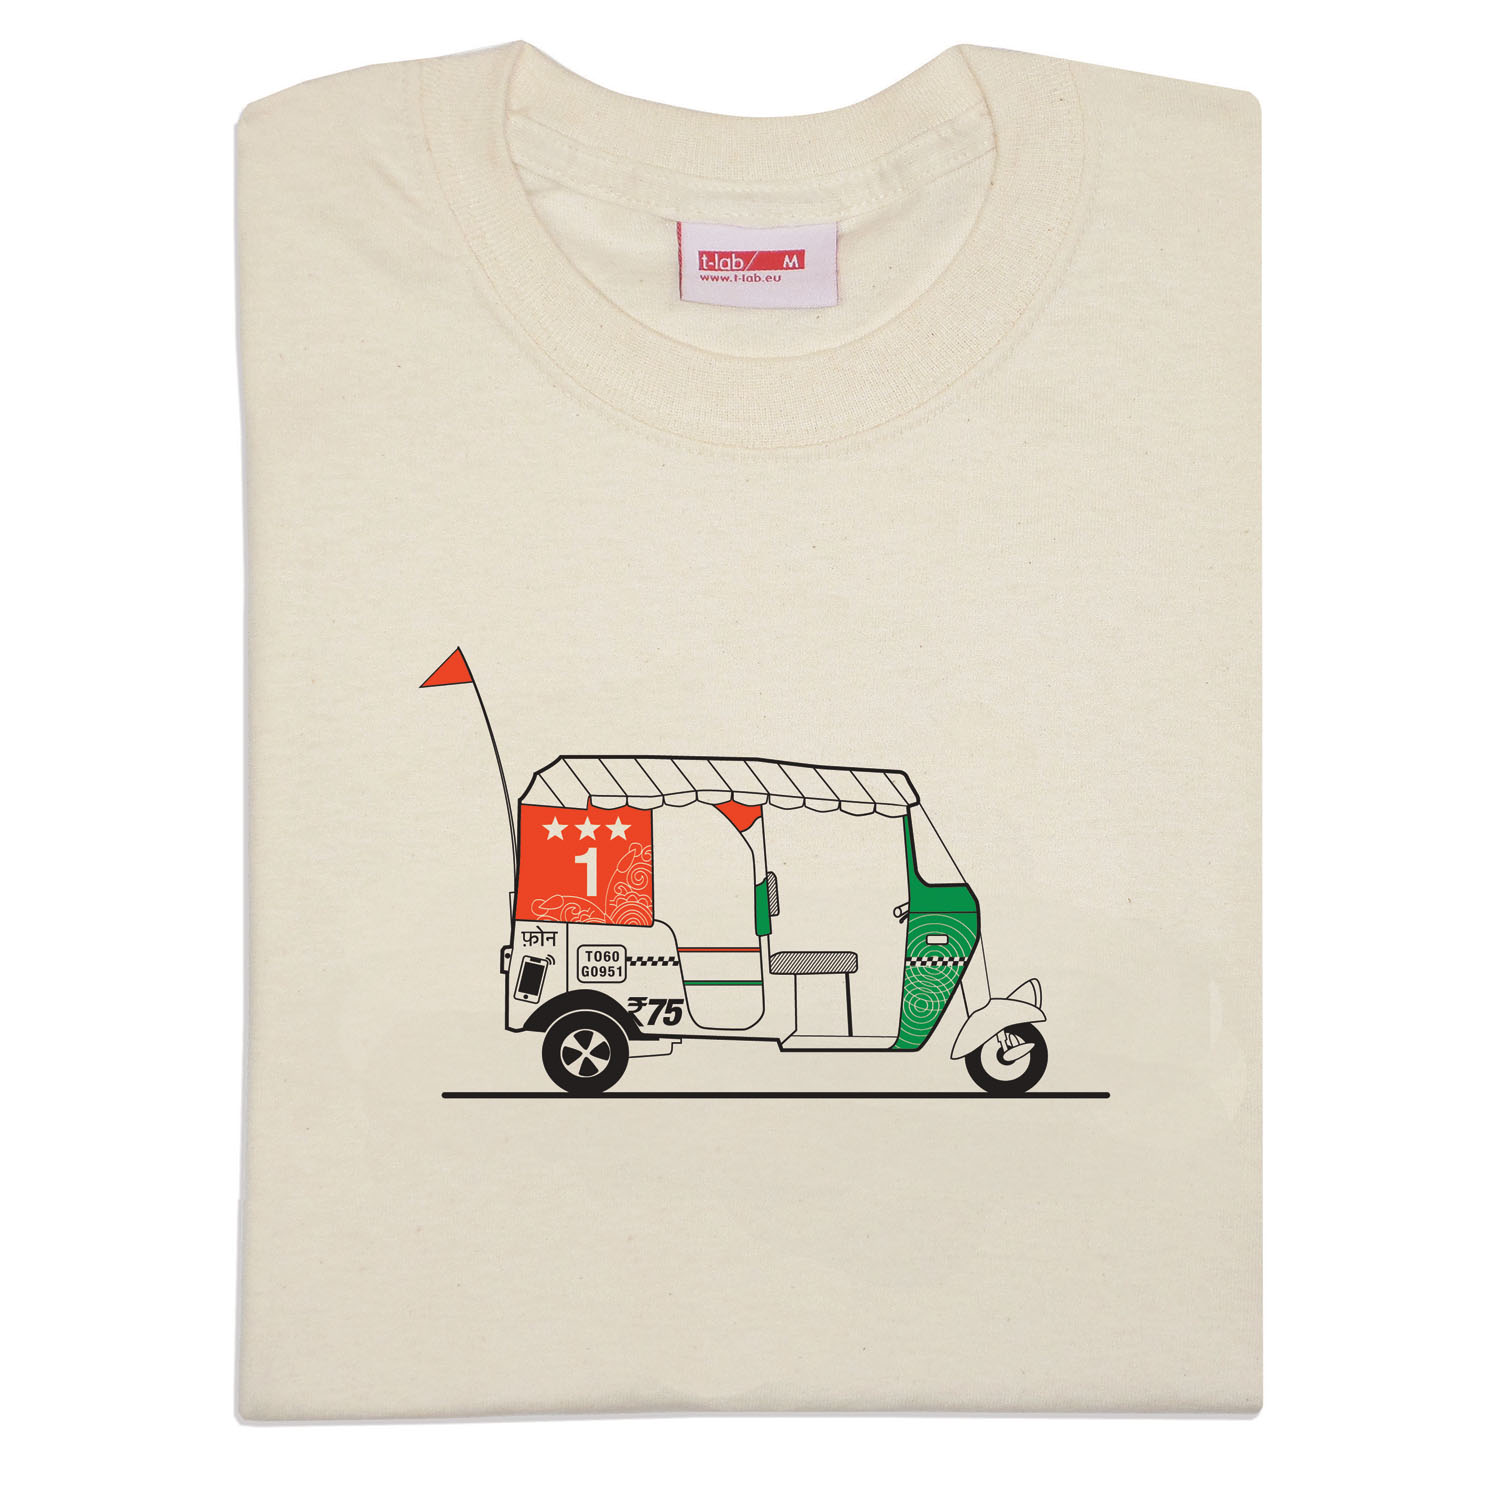 T-lab Tuk Tuk mens natural white t-shirt